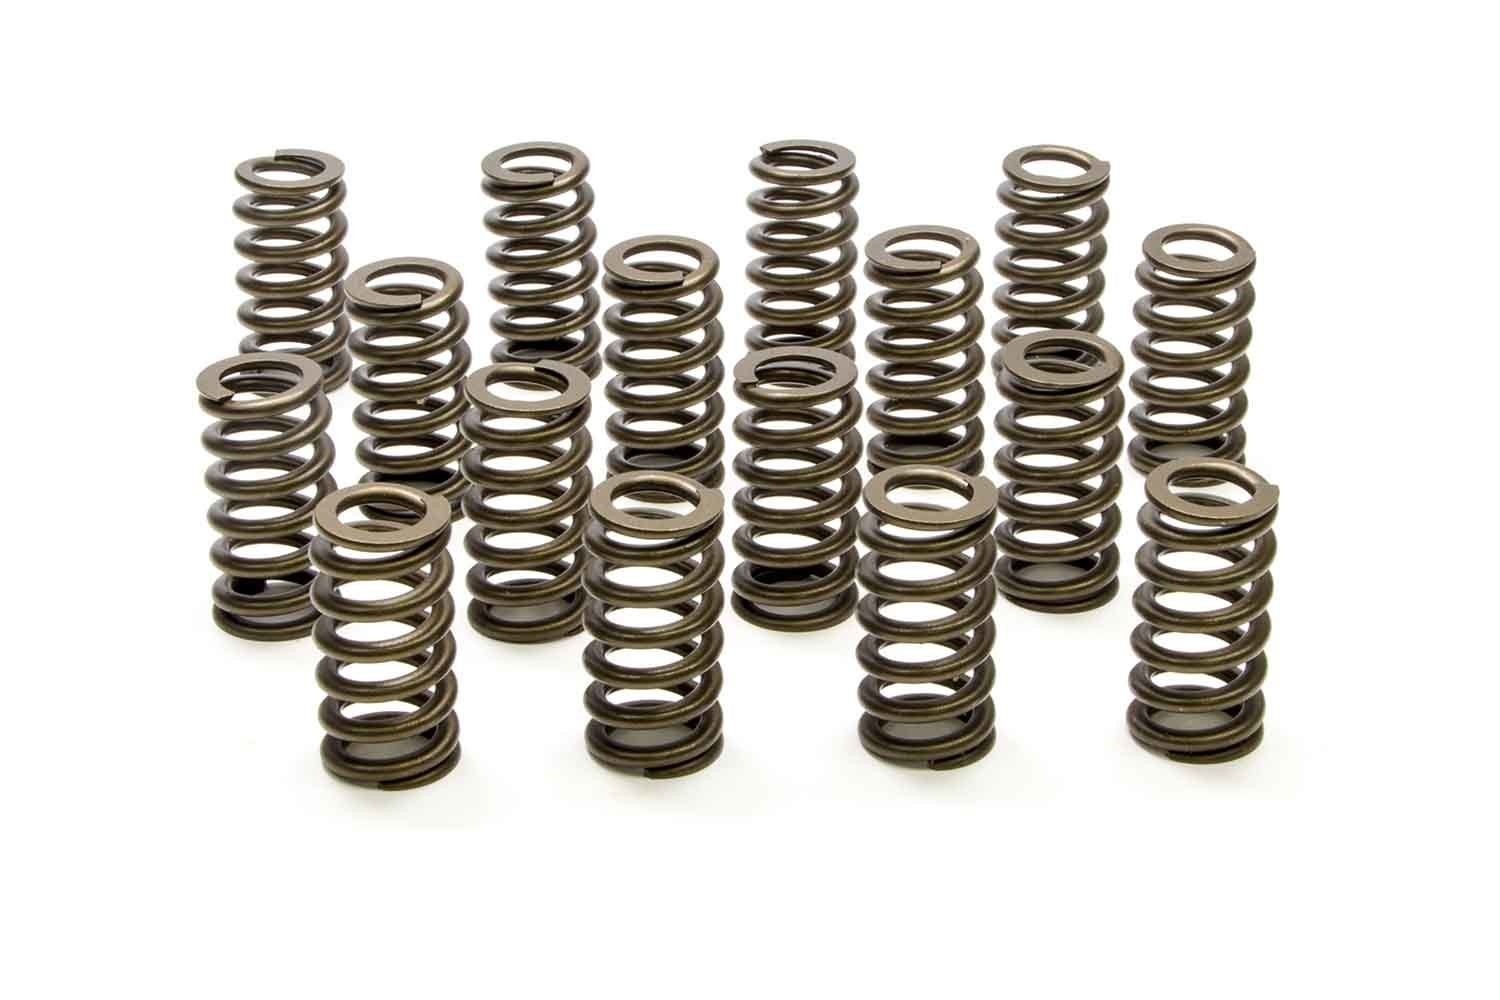 PAC Racing Springs PAC-1219 Valve Spring, 1200 Series, Ovate Beehive Spring, 340 lb/in Spring Rate, 1.100 in Coil Bind, 1.307 in OD, GM LS-Series, Set of 16